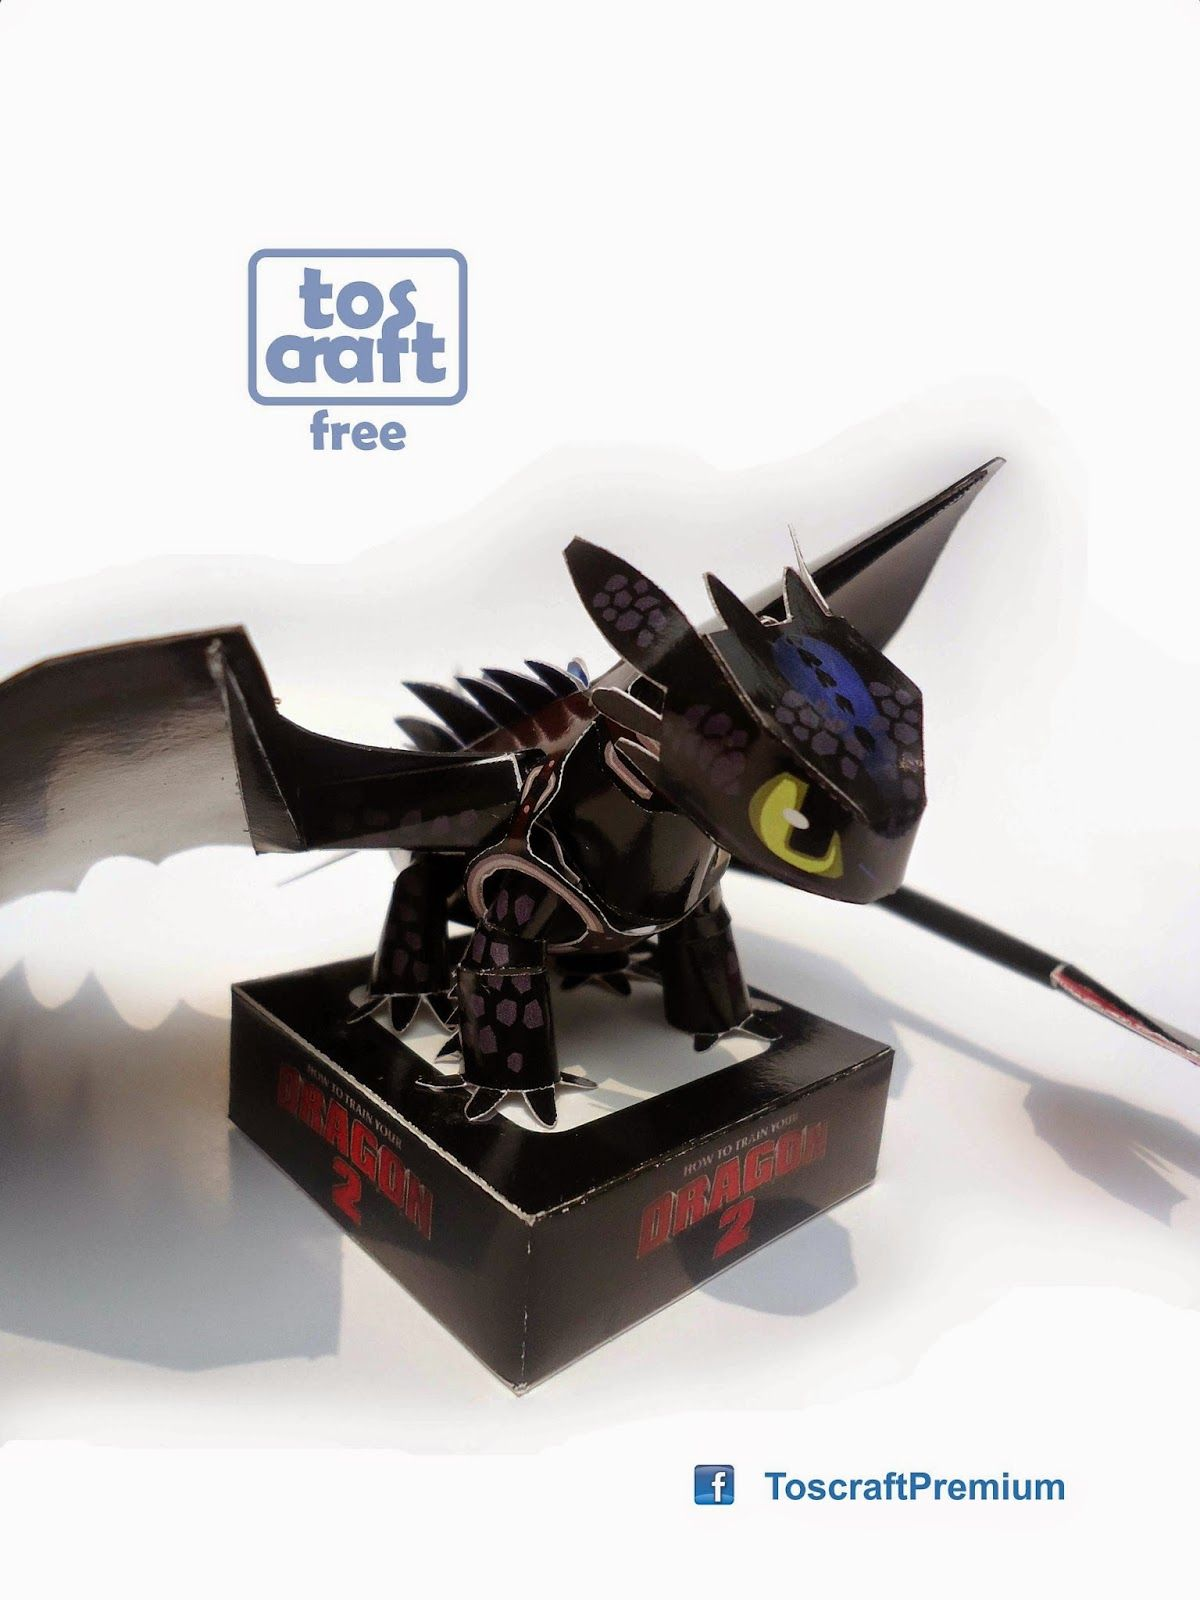 Paperkraft.net - Free Papercraft, Paper Model, & Papertoy: Toothless Papercraft (Dragon)